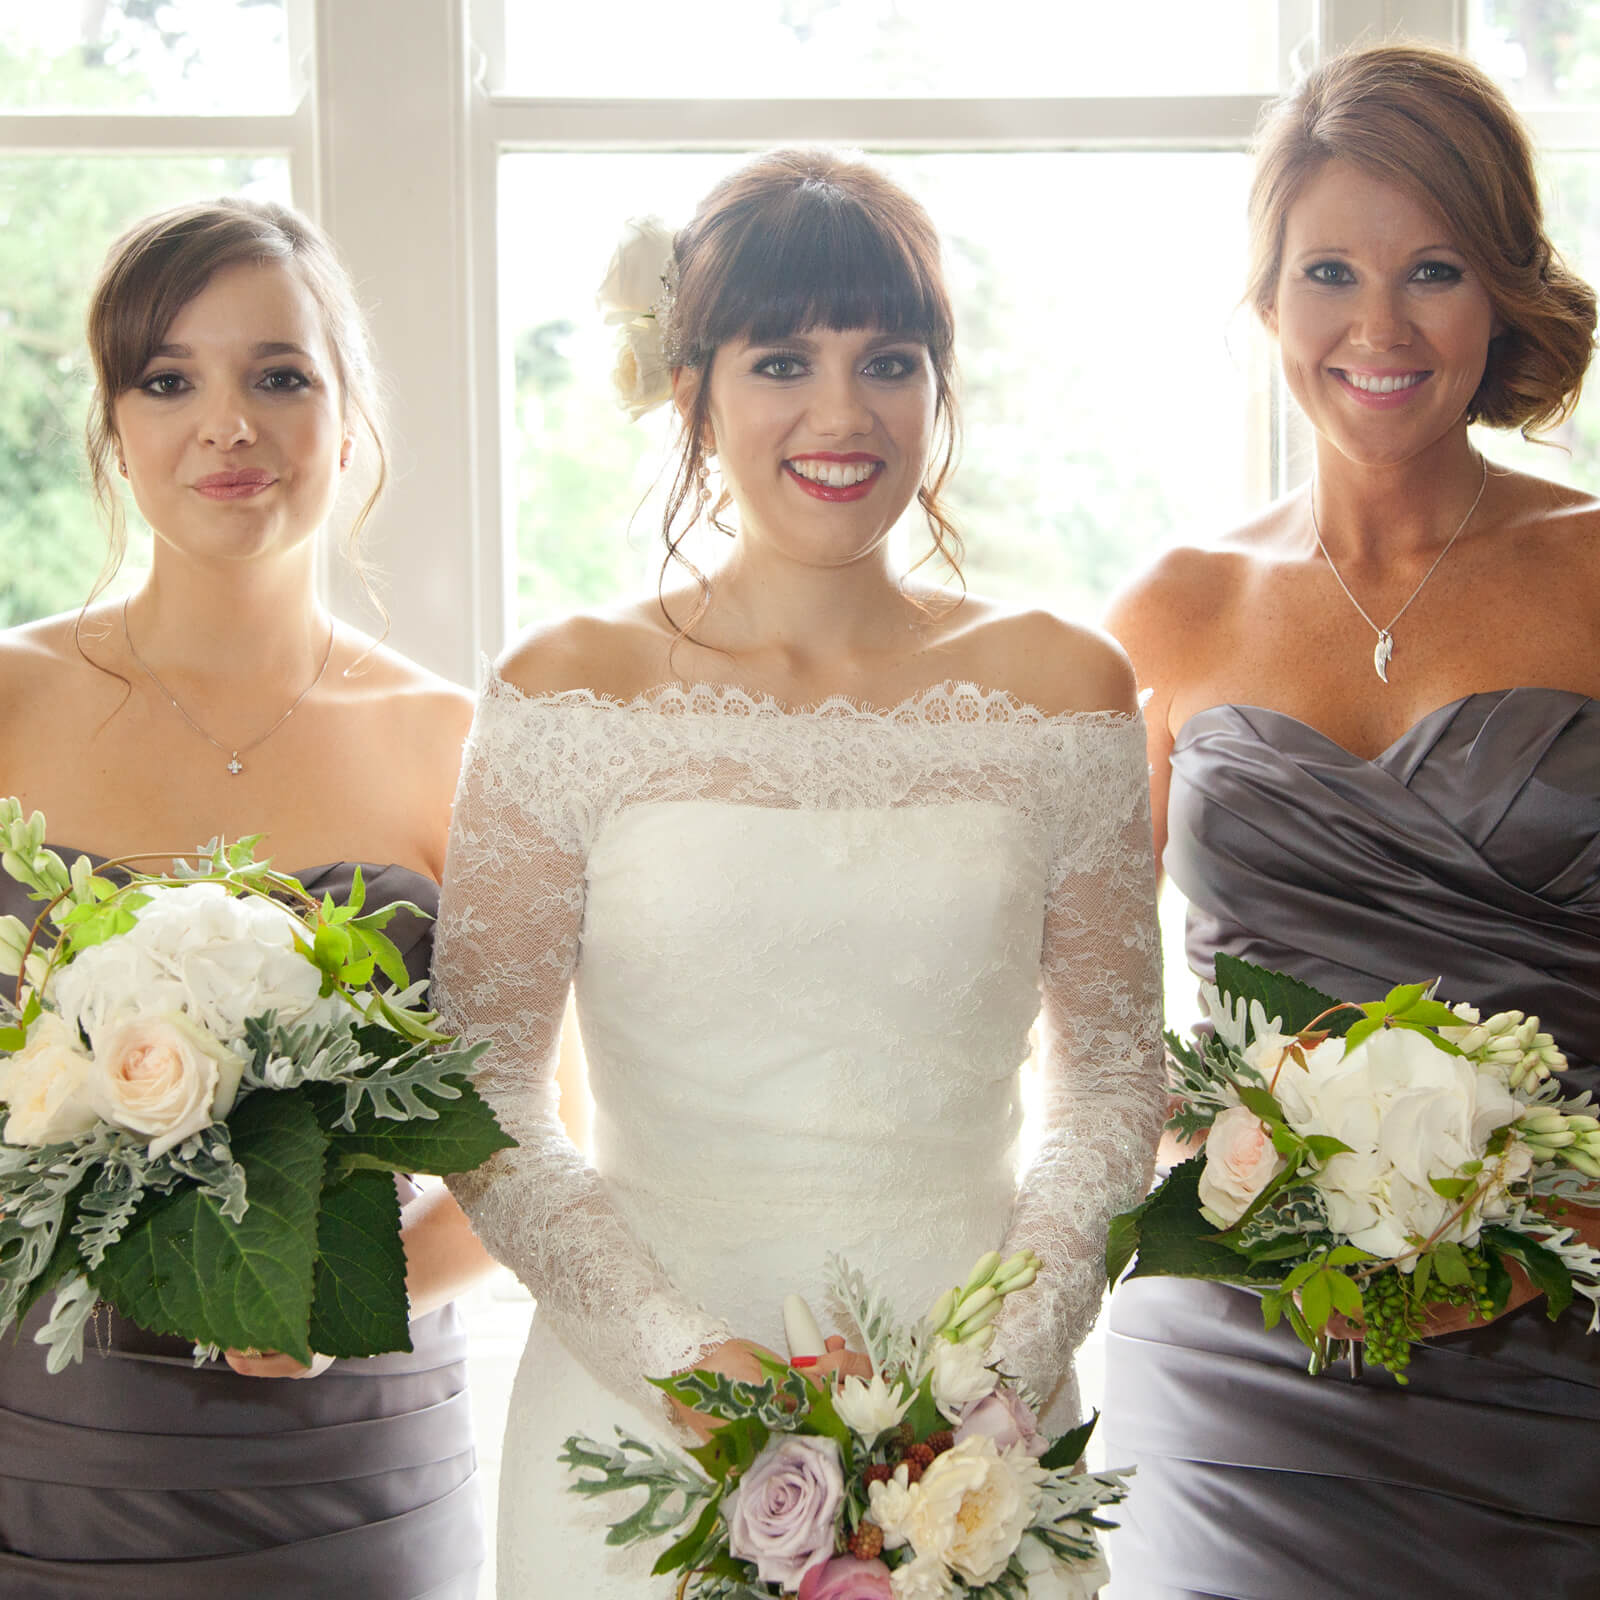 Bridesmaids-Ettington-bride